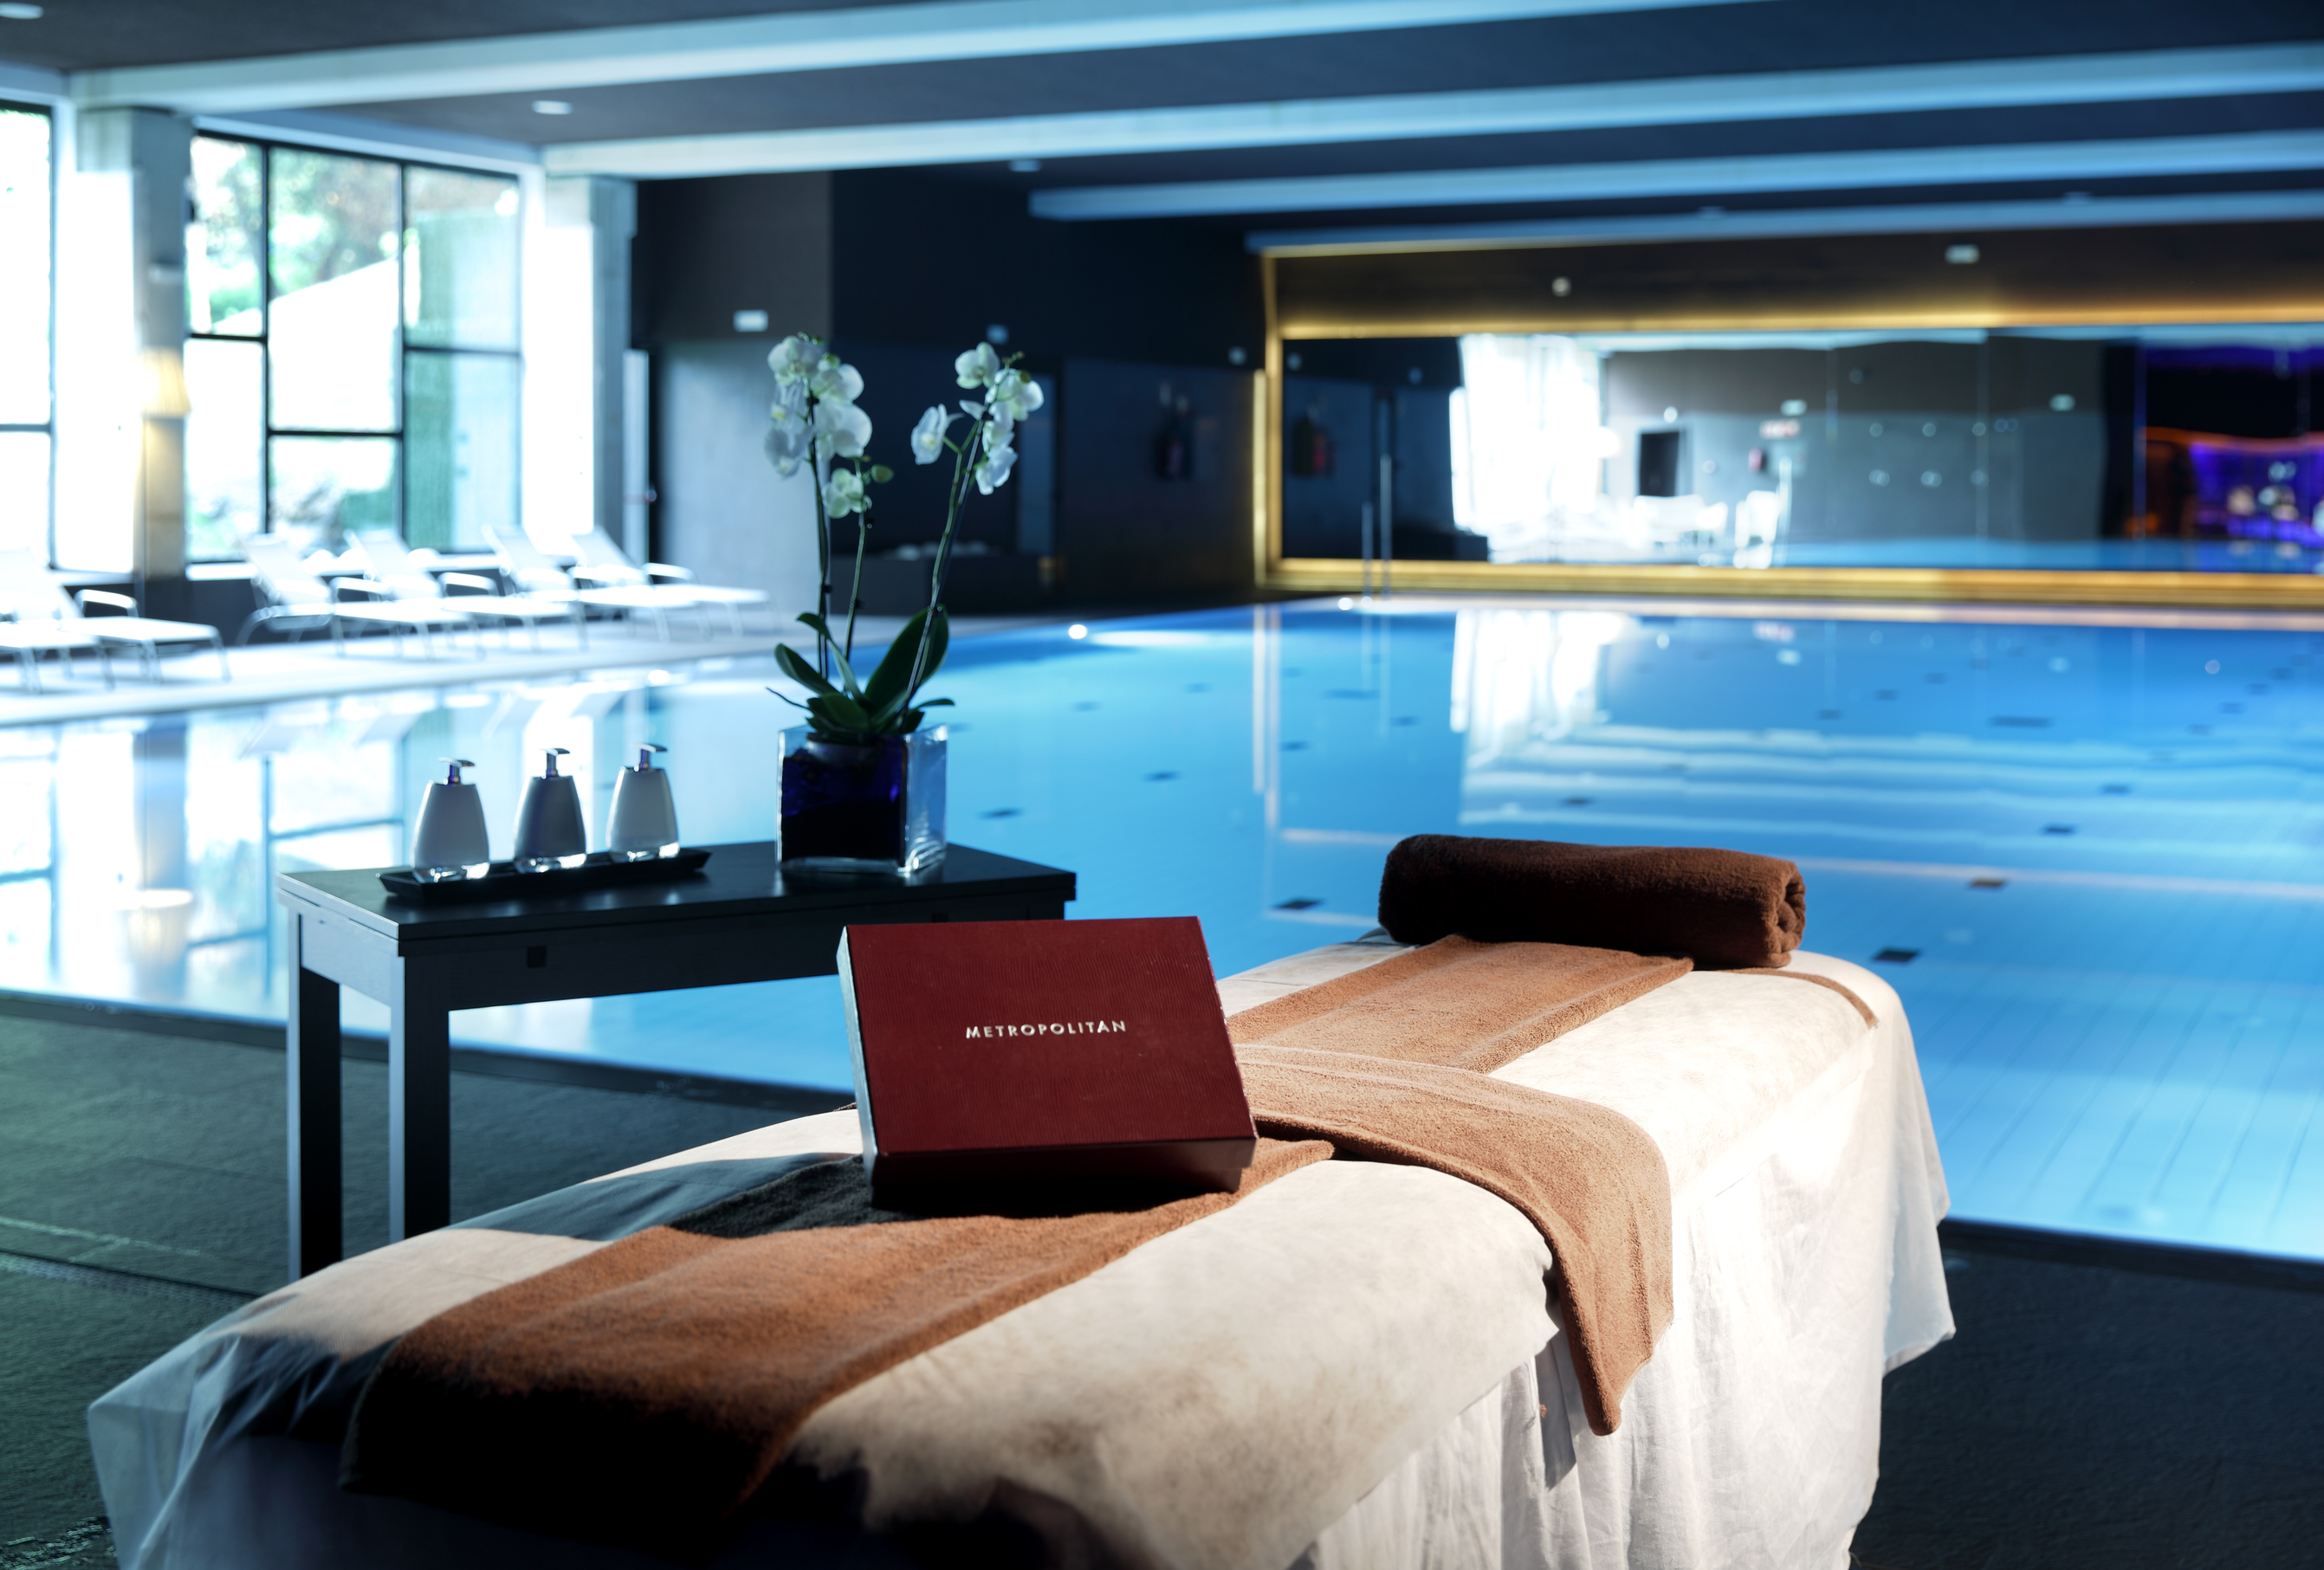 Barcel introduce su marca occidental en bilbao con un for Hoteles en bilbao con piscina